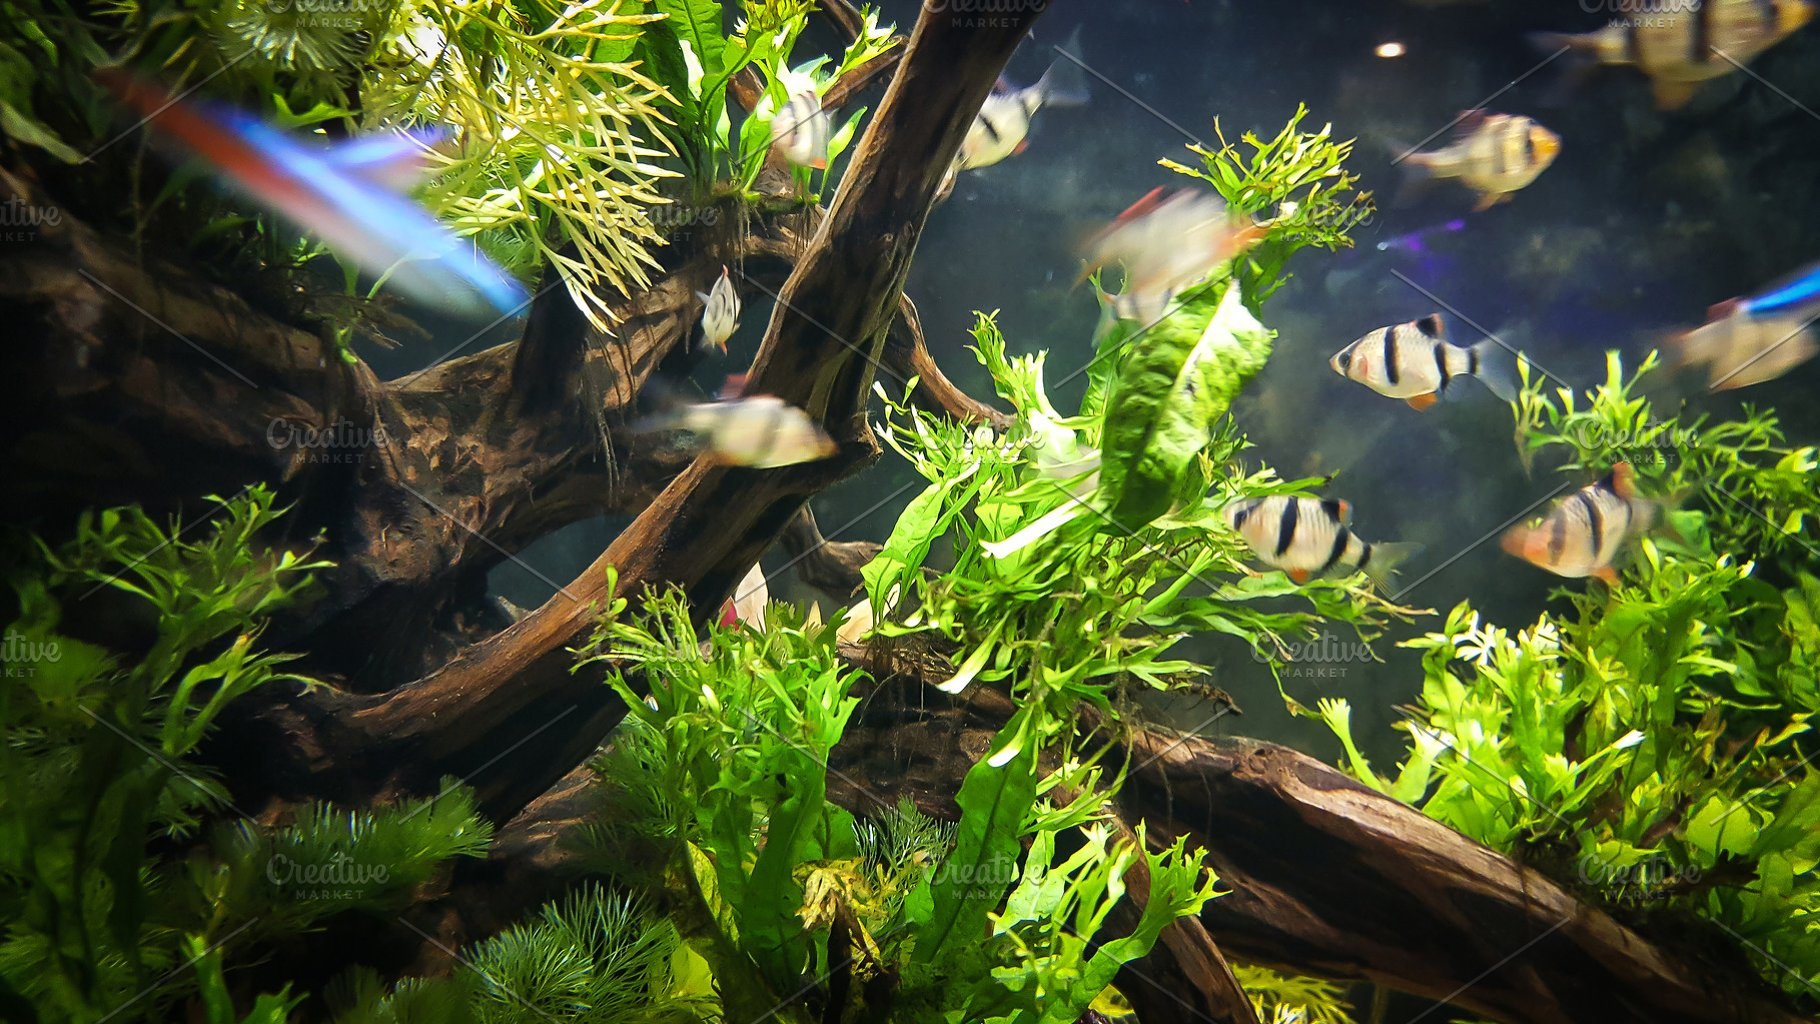 Decorative aquarium plants